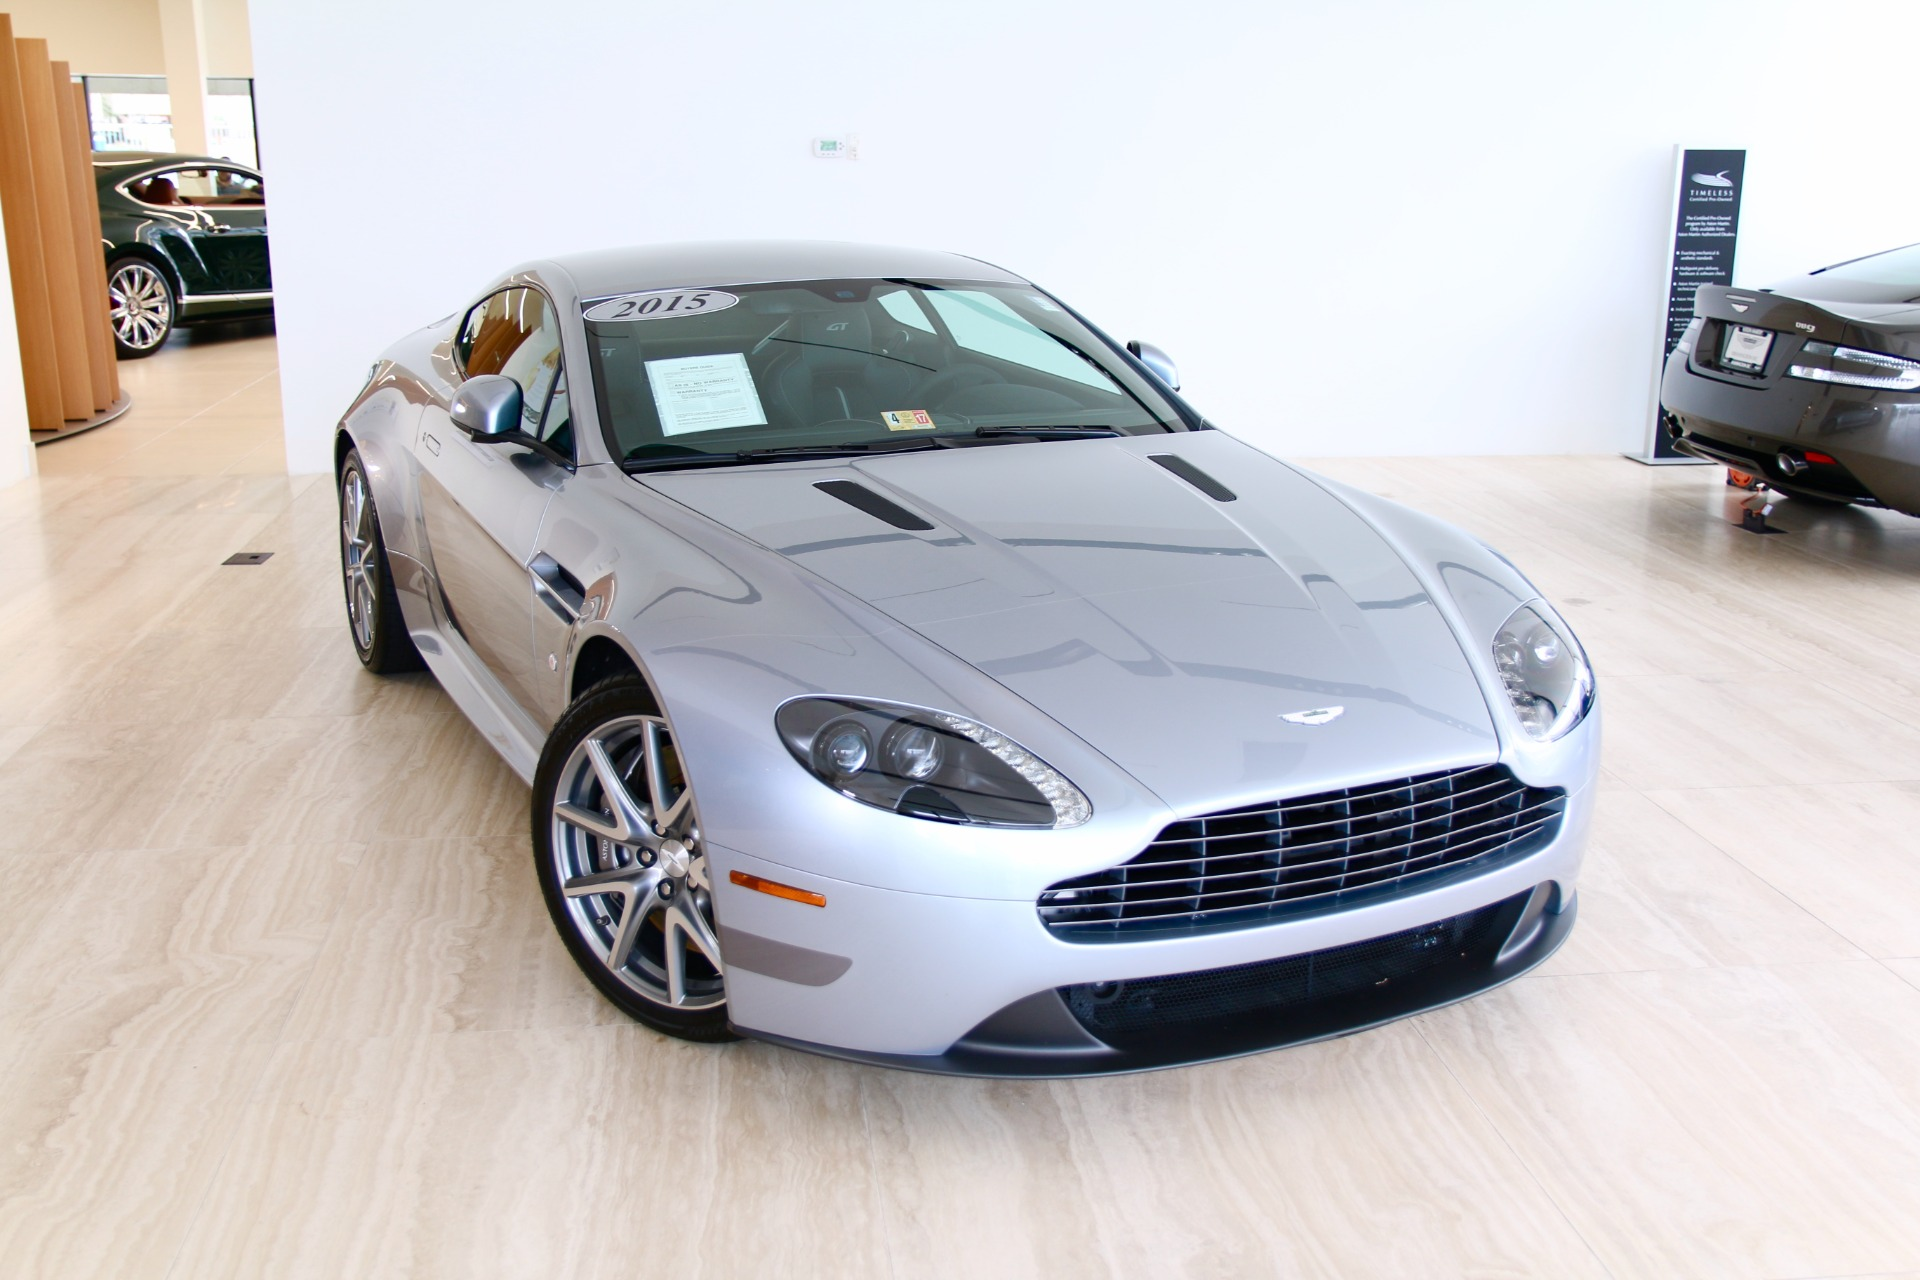 2015 aston martin vantage gt stock # pc19033 for sale near vienna